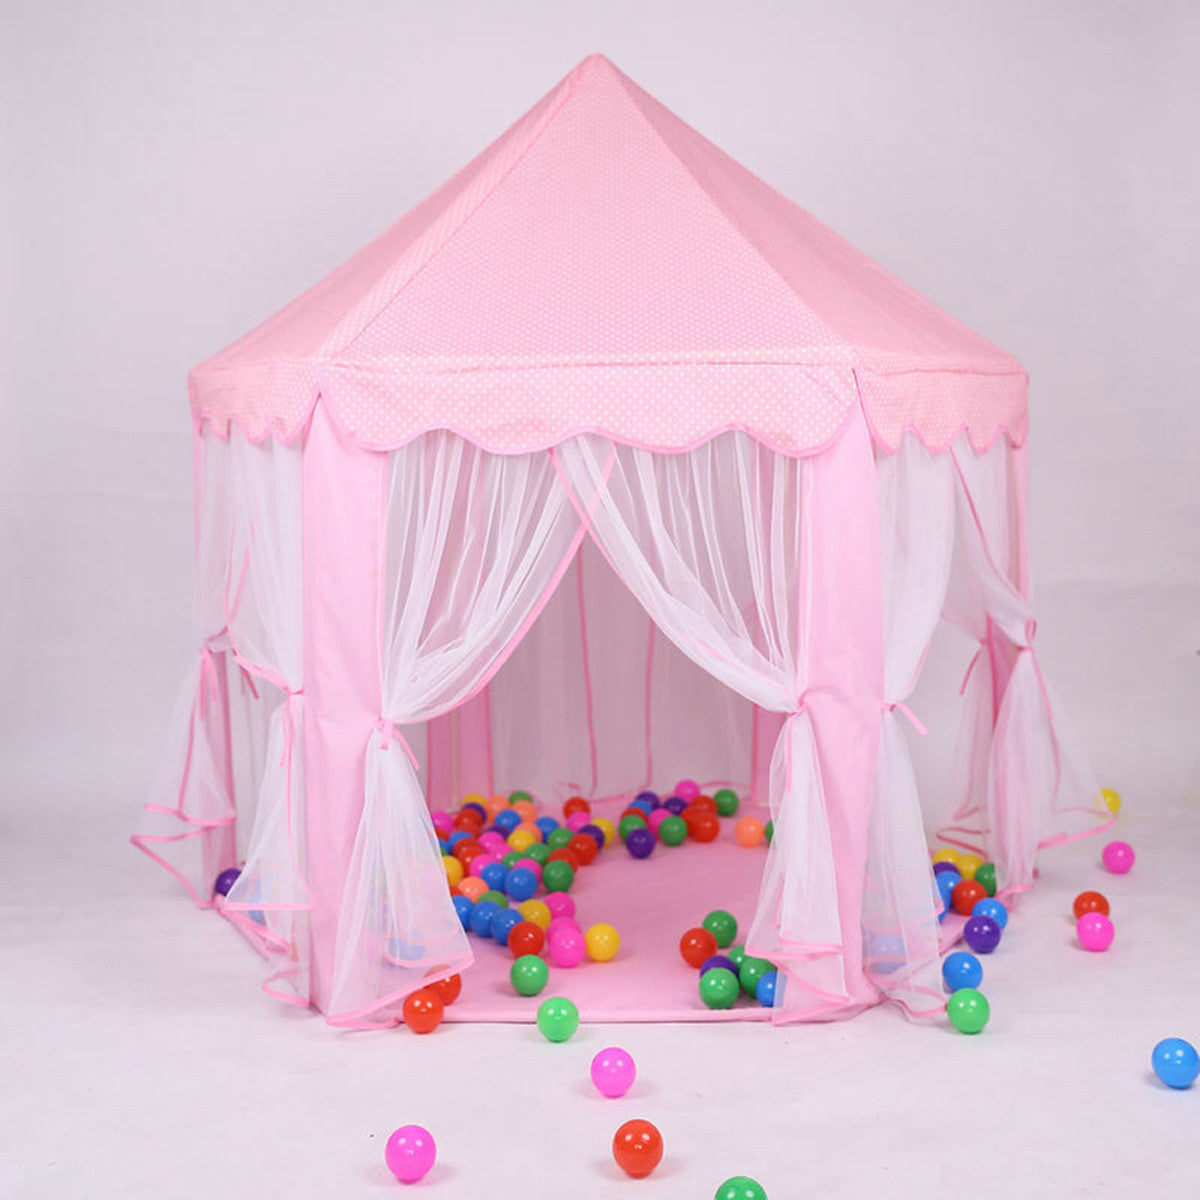 Girls Princess Castle Play Tent Large Playhouse Indoor Outdoor for KidsBalls Not IncludedBlue & Girls Princess Castle Play Tent Large Playhouse Indoor Outdoor for ...